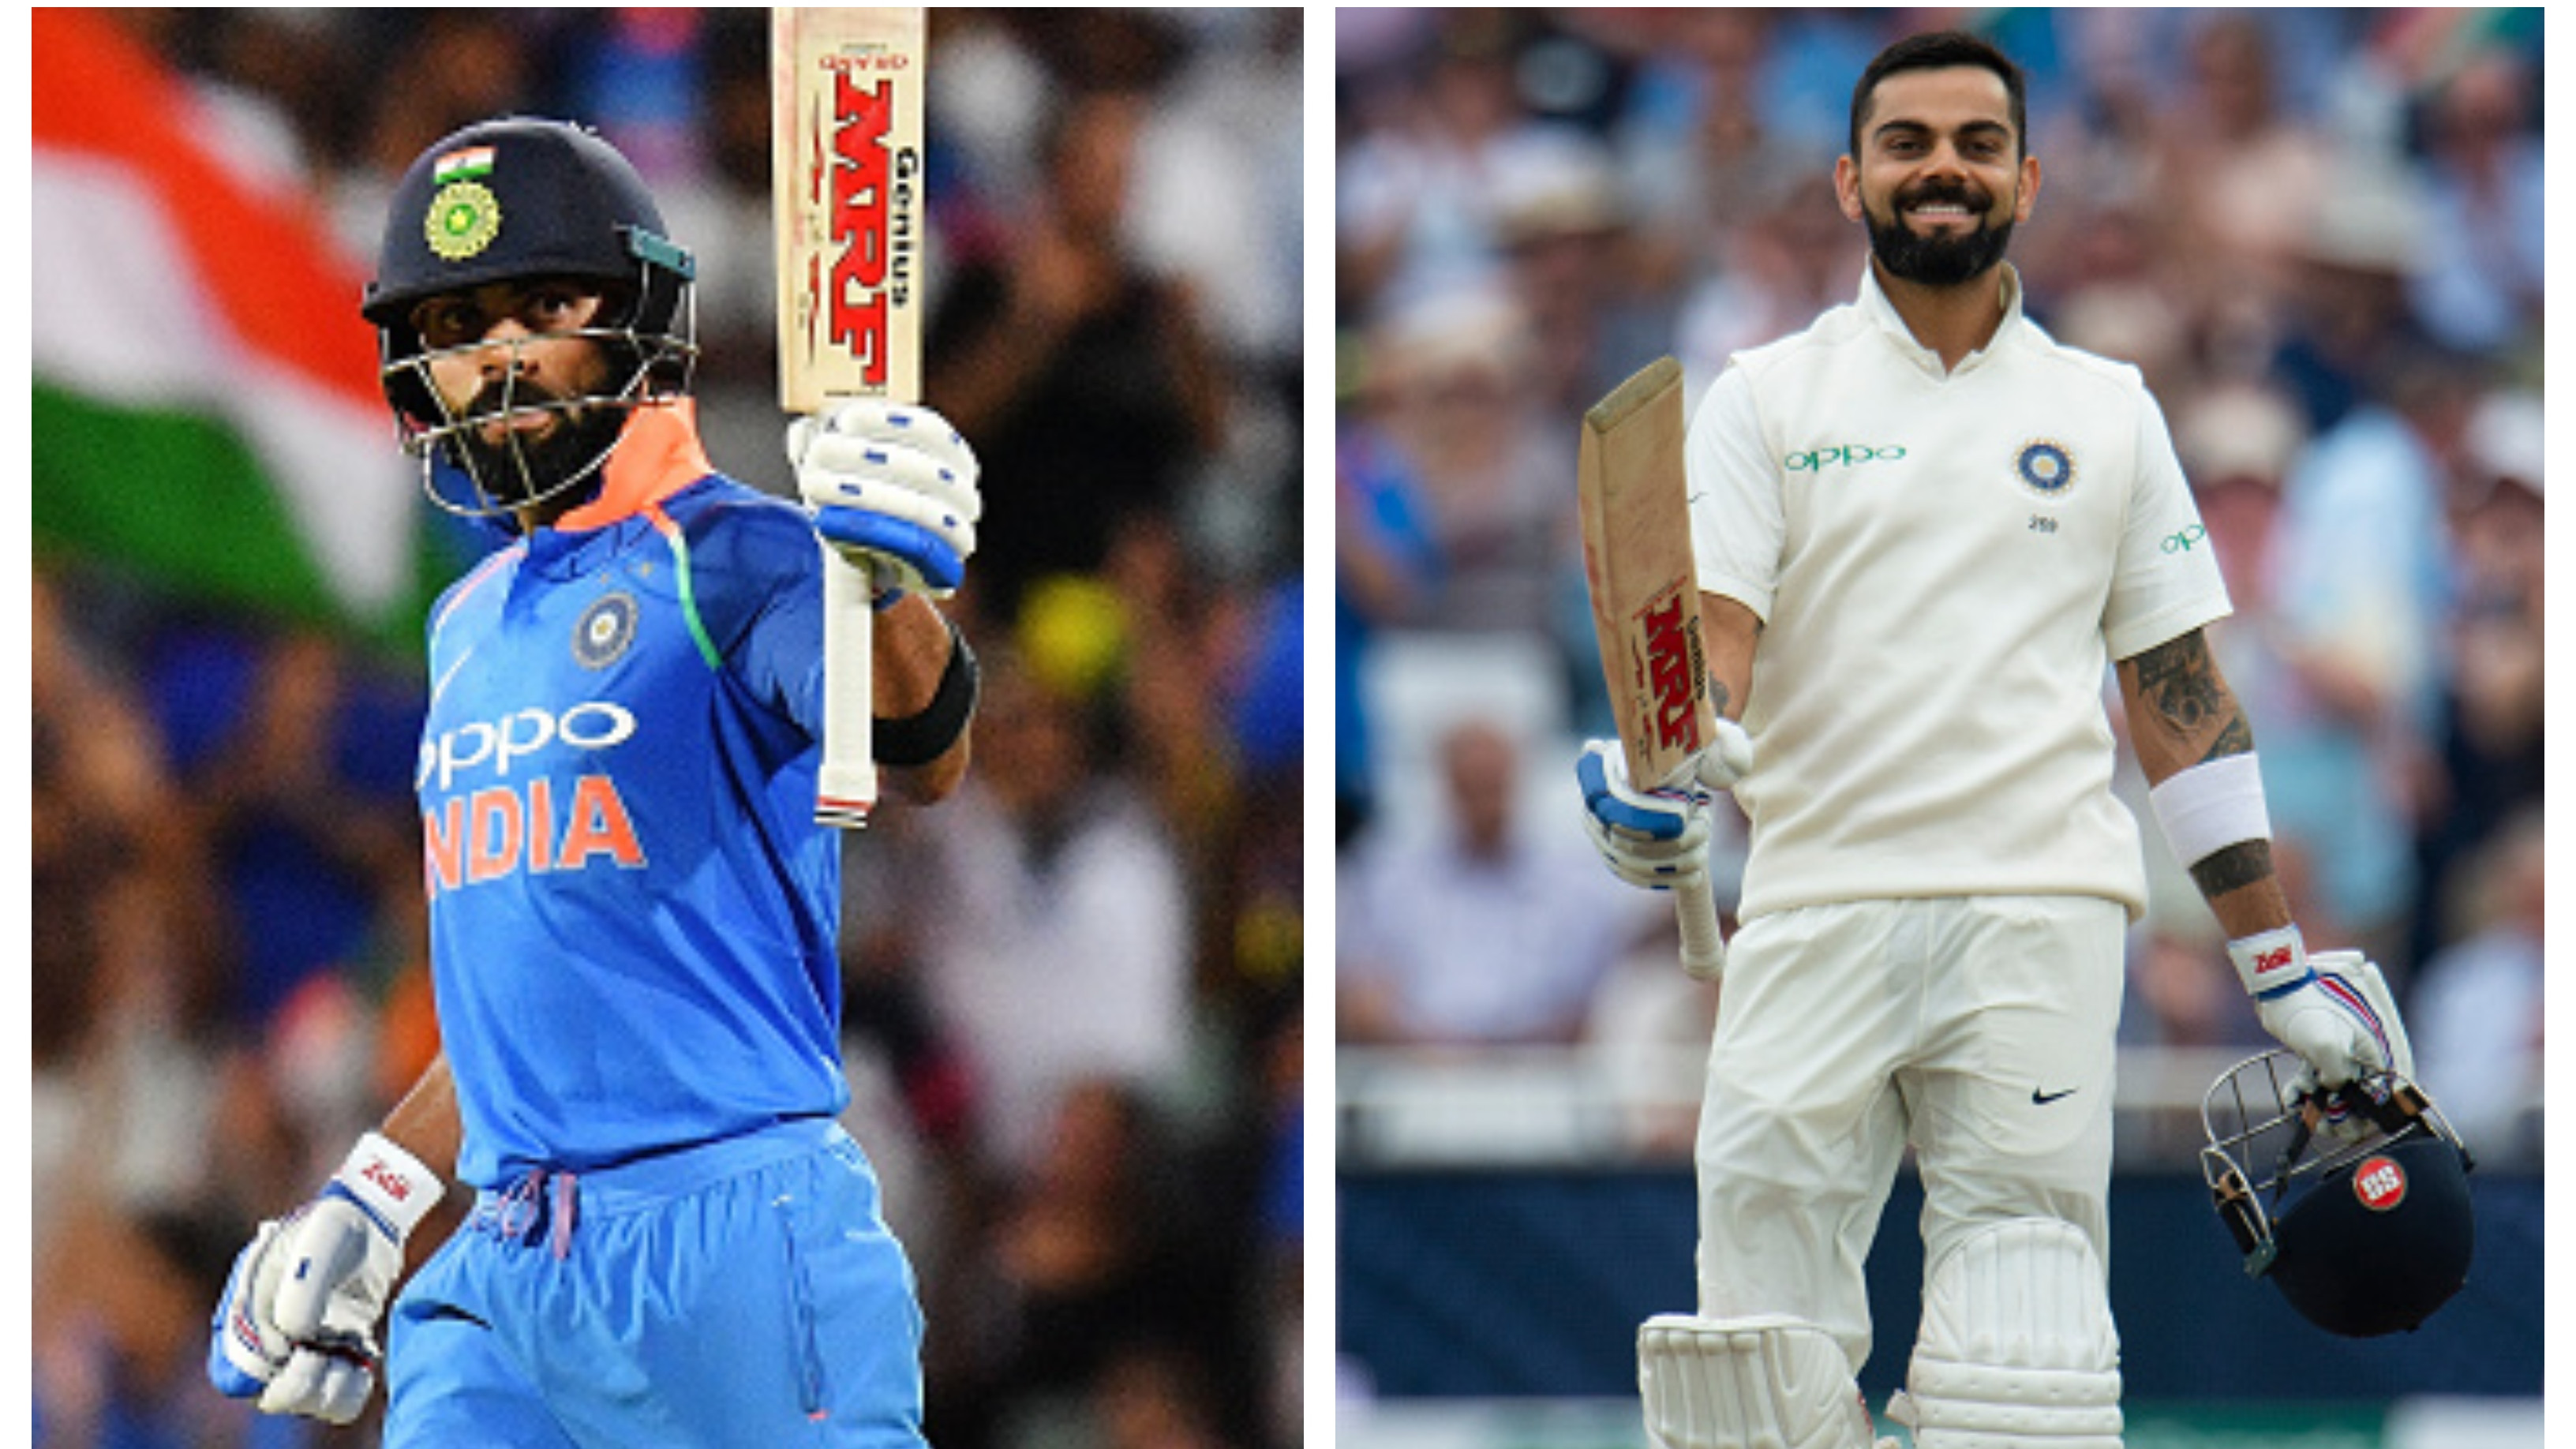 Virat Kohli creates history by sealing three major ICC awards